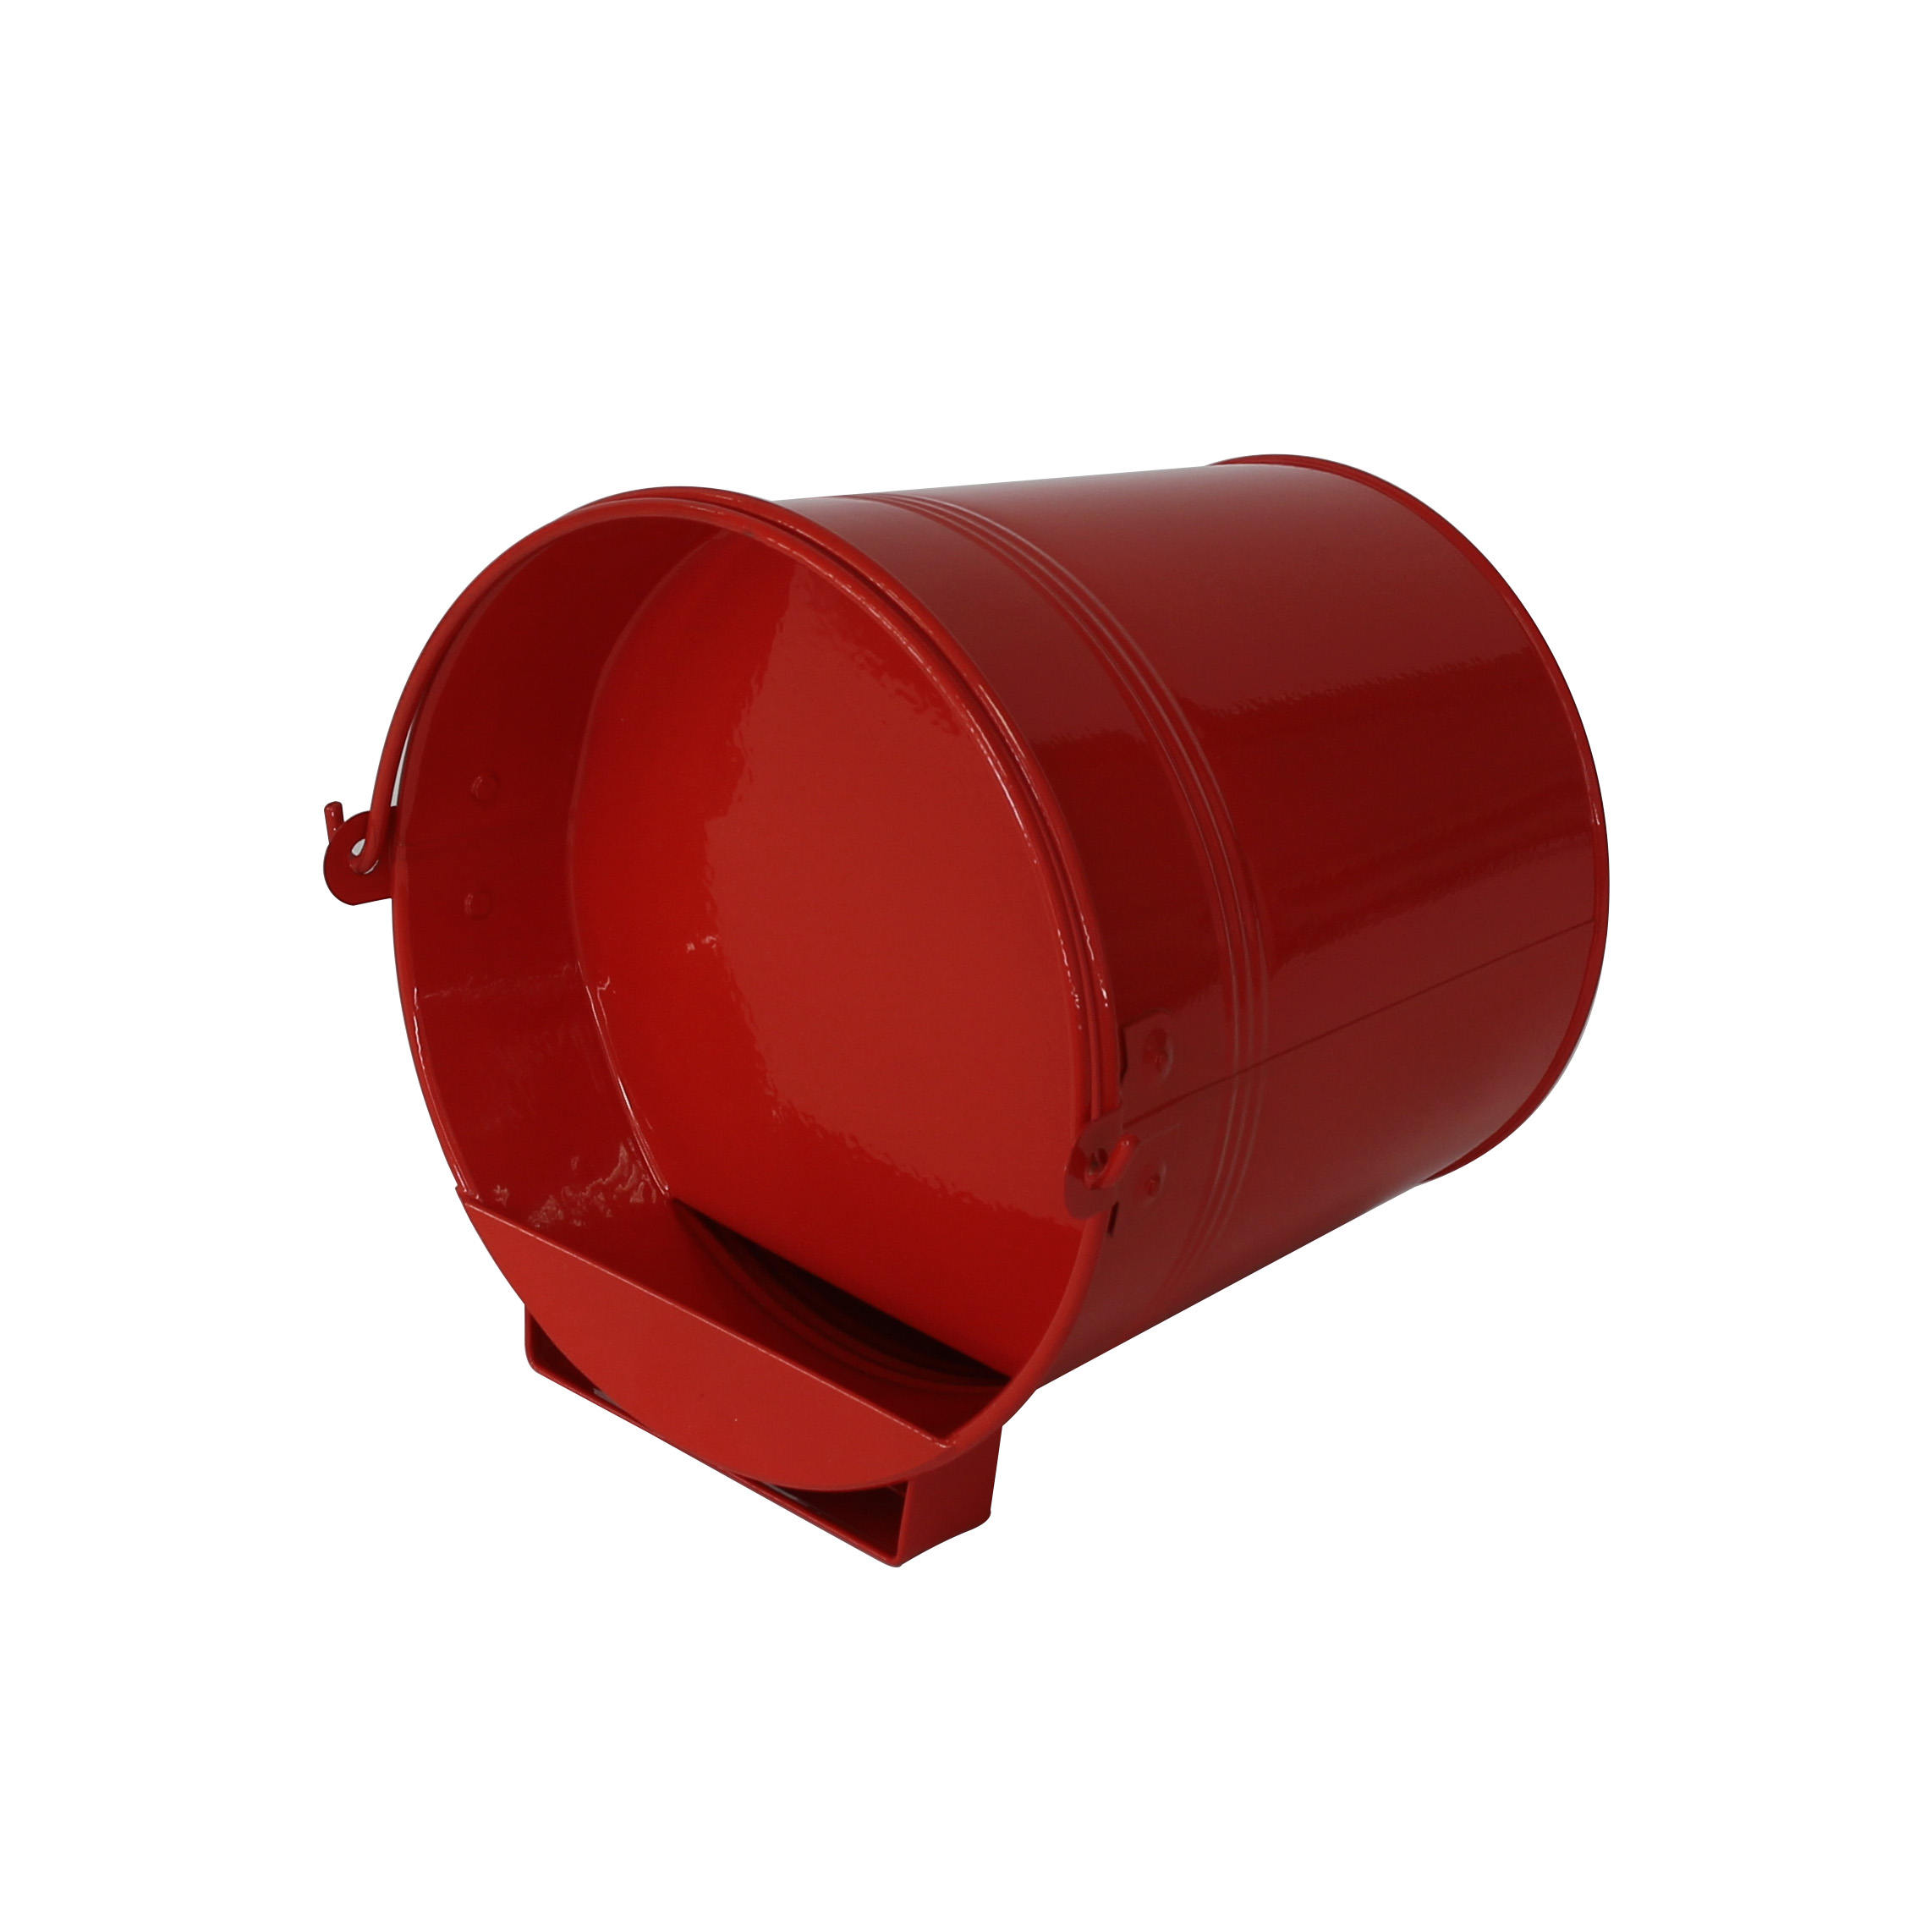 Red 4L metal poultry drinker